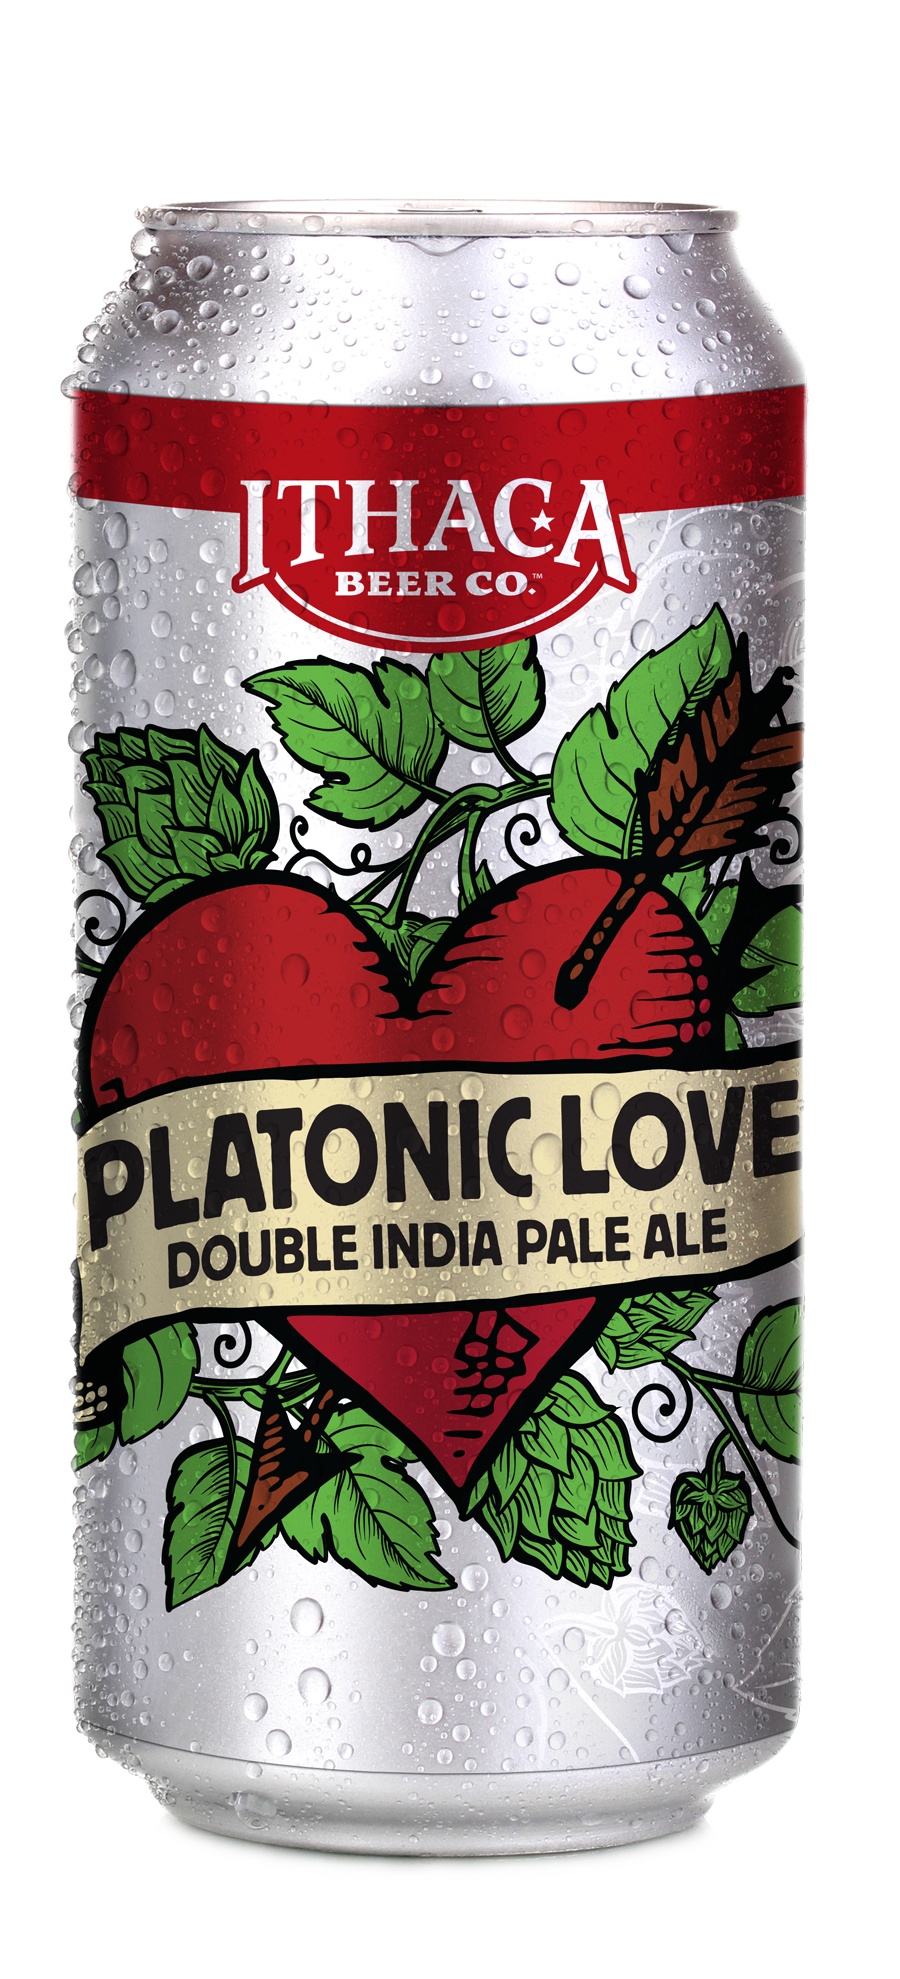 Ithaca Beer Company Announces Limited Release IPAs | Brewbound com